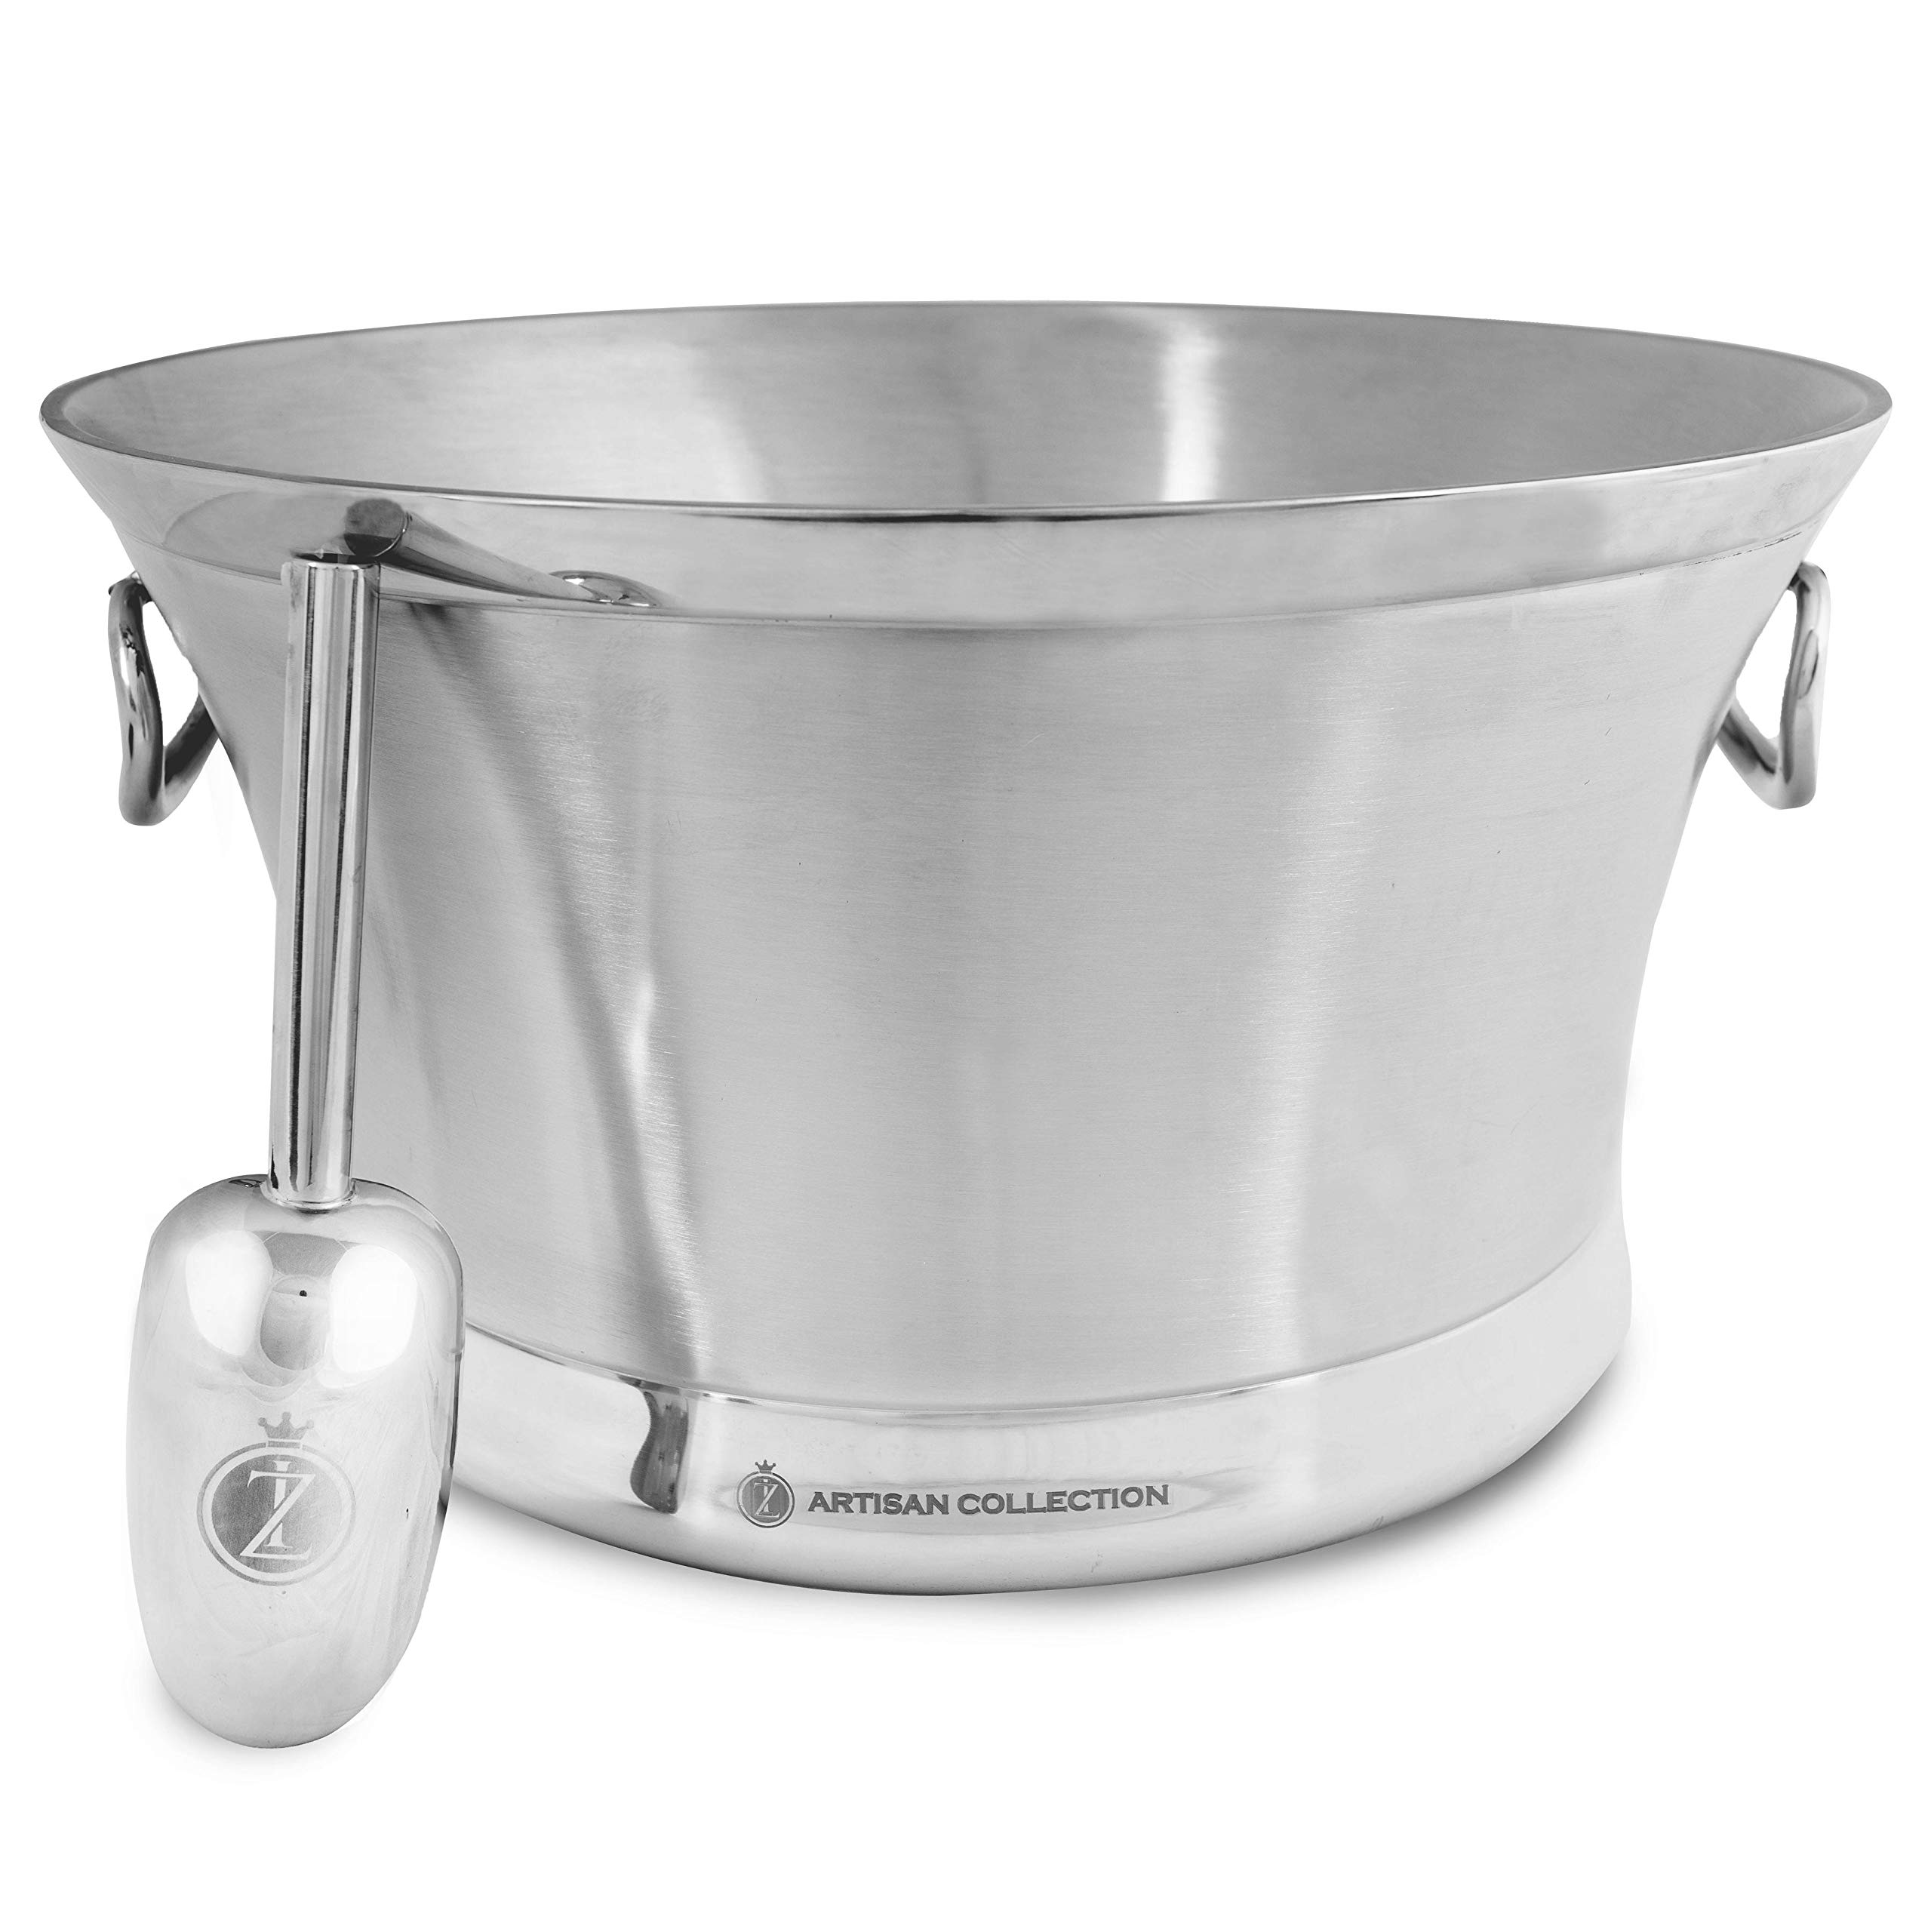 Large Beverage Tub with Ice Scoop: Double Wall Insulated Ice Bucket of Premium Stainless Steel. Party Drink Chiller for Champagne, Wine, and Beer. Metal Beverage Tubs and Buckets for Parties.